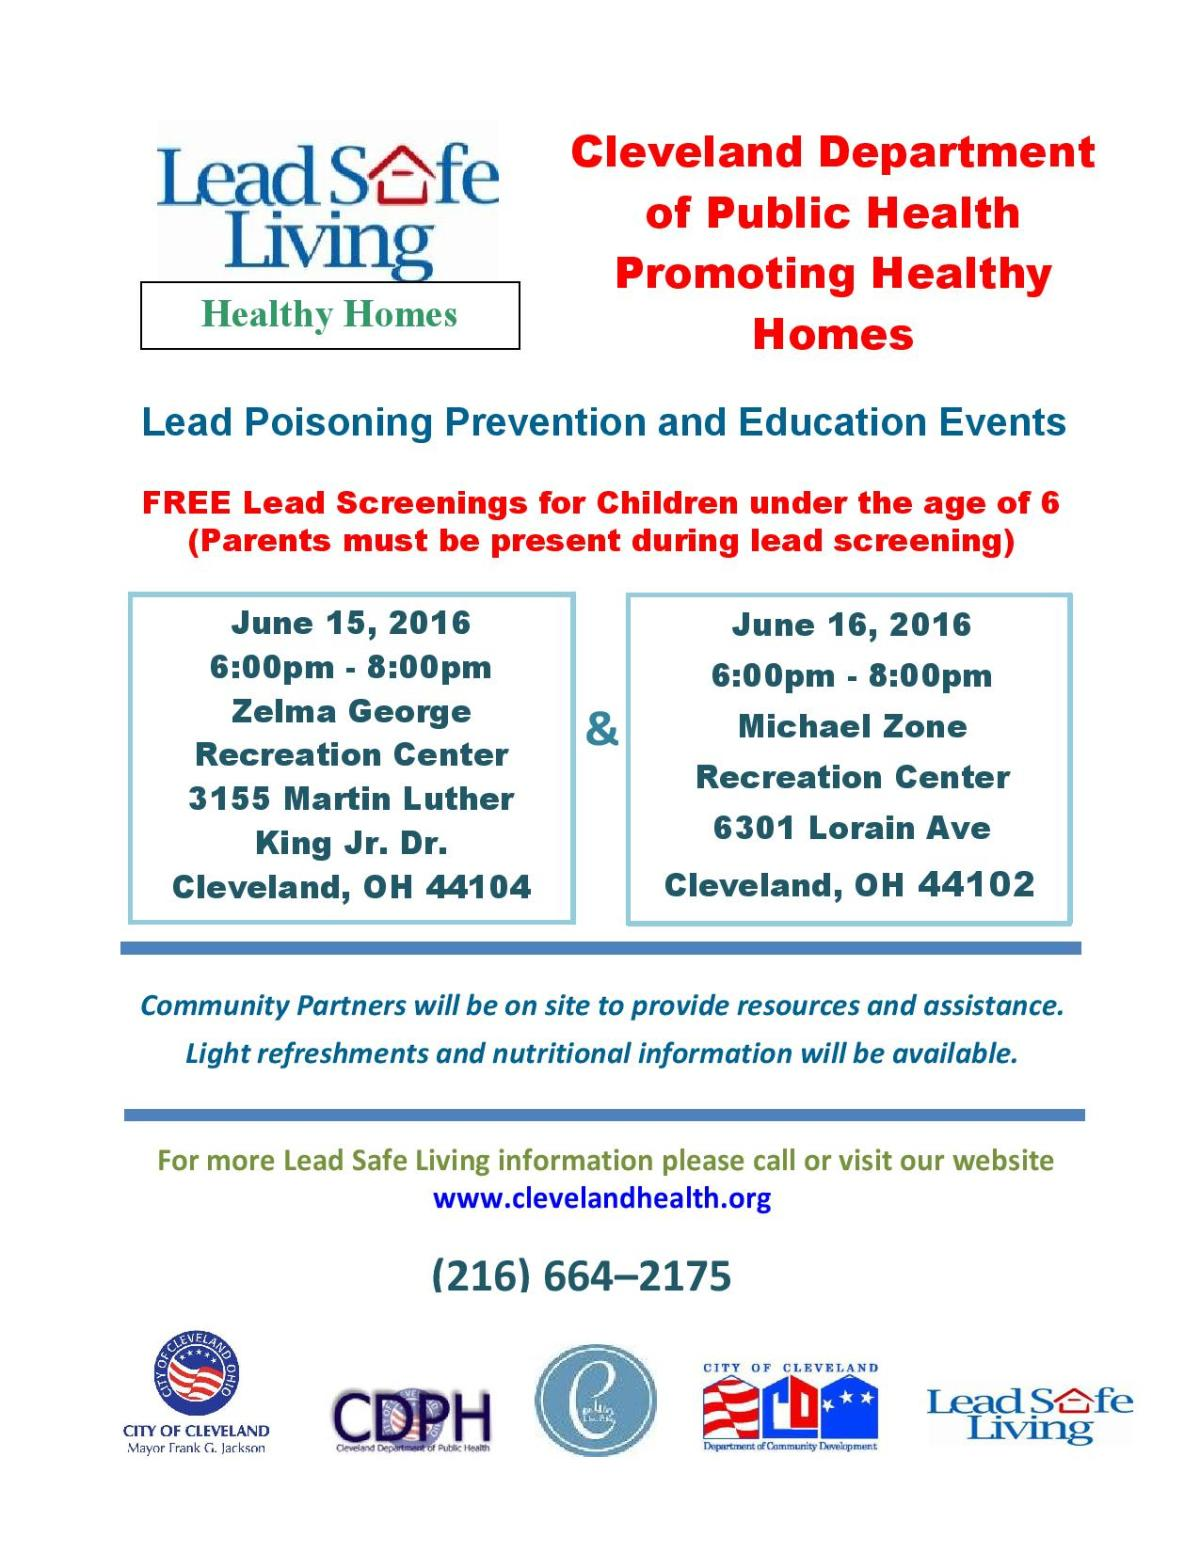 Lead Poisoning Prevention Education Events